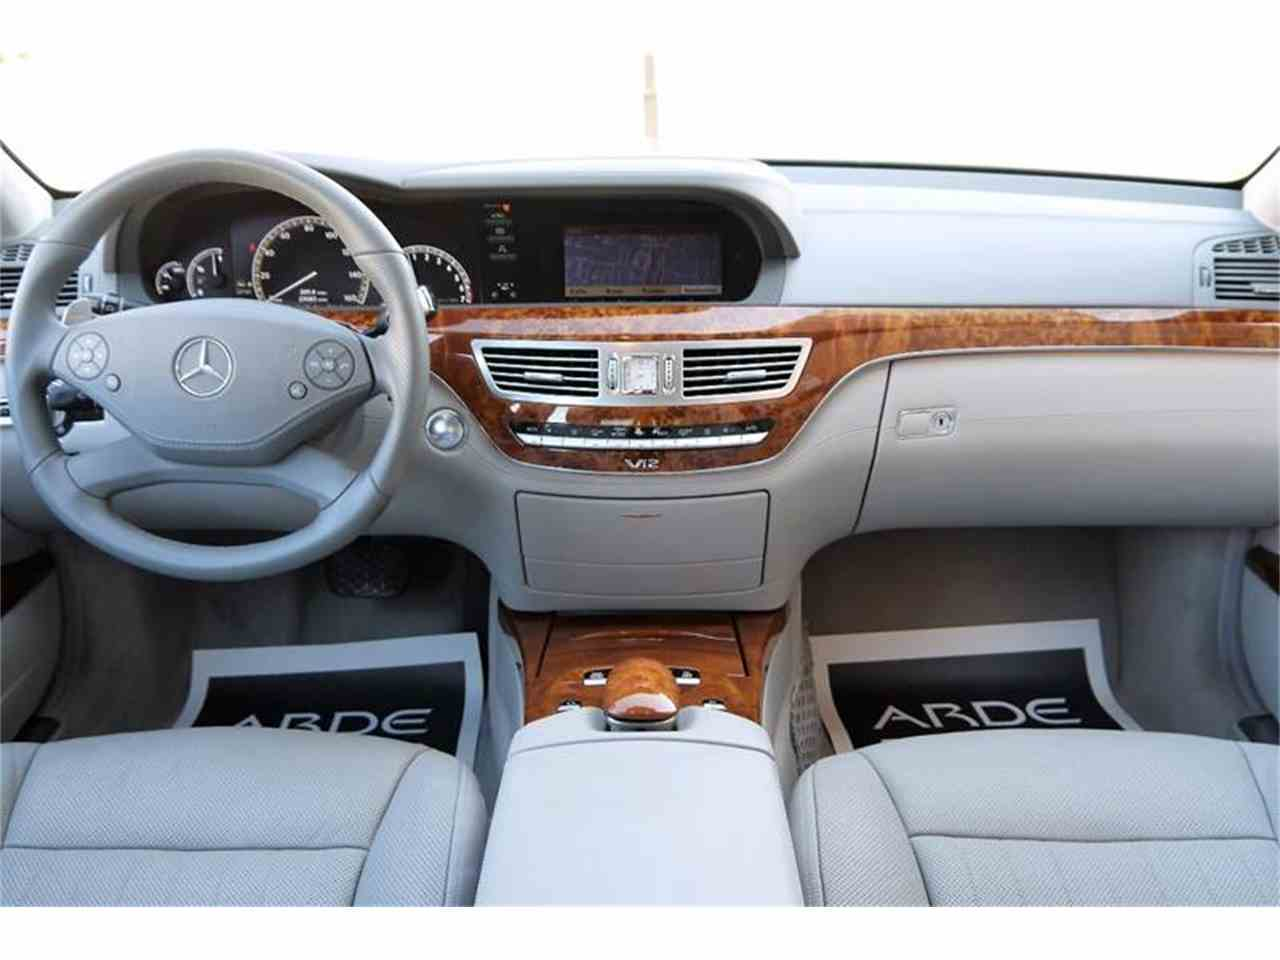 Large Picture of 2010 Mercedes-Benz S-Class located in Brentwood Tennessee Auction Vehicle Offered by Arde Motorcars - M2NU